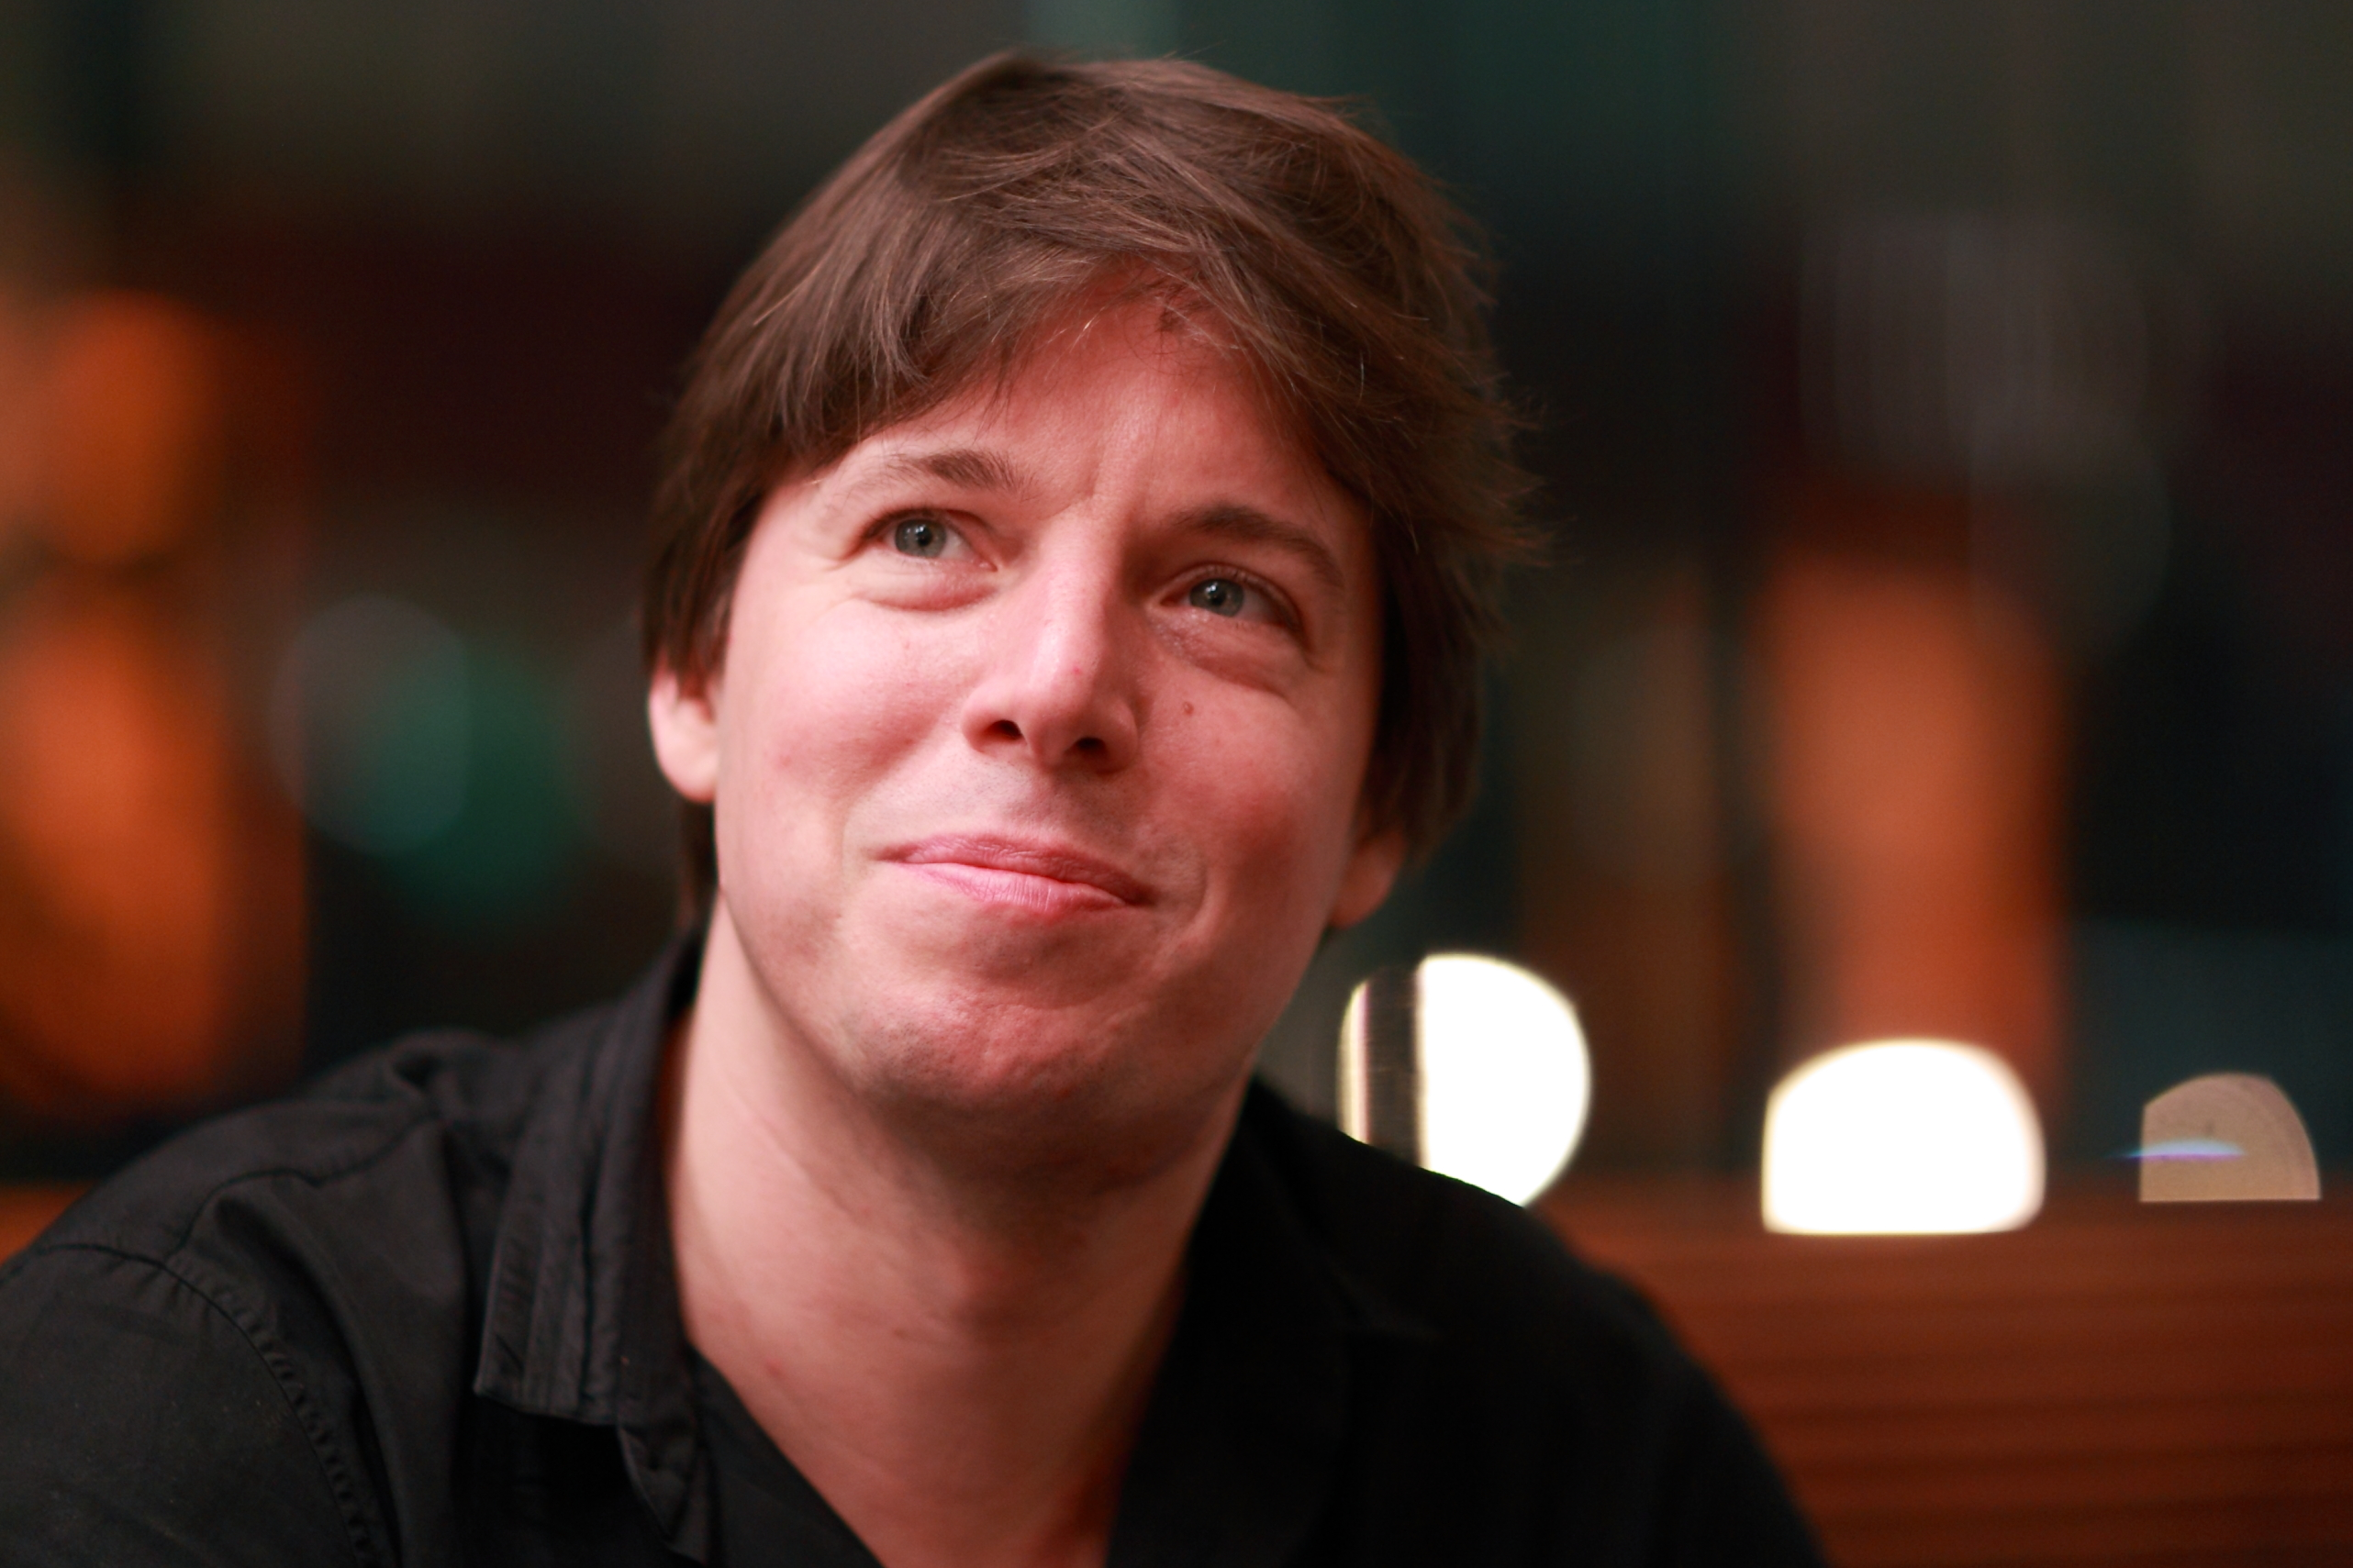 Joshua Bell Wikipedia The Free Encyclopedia